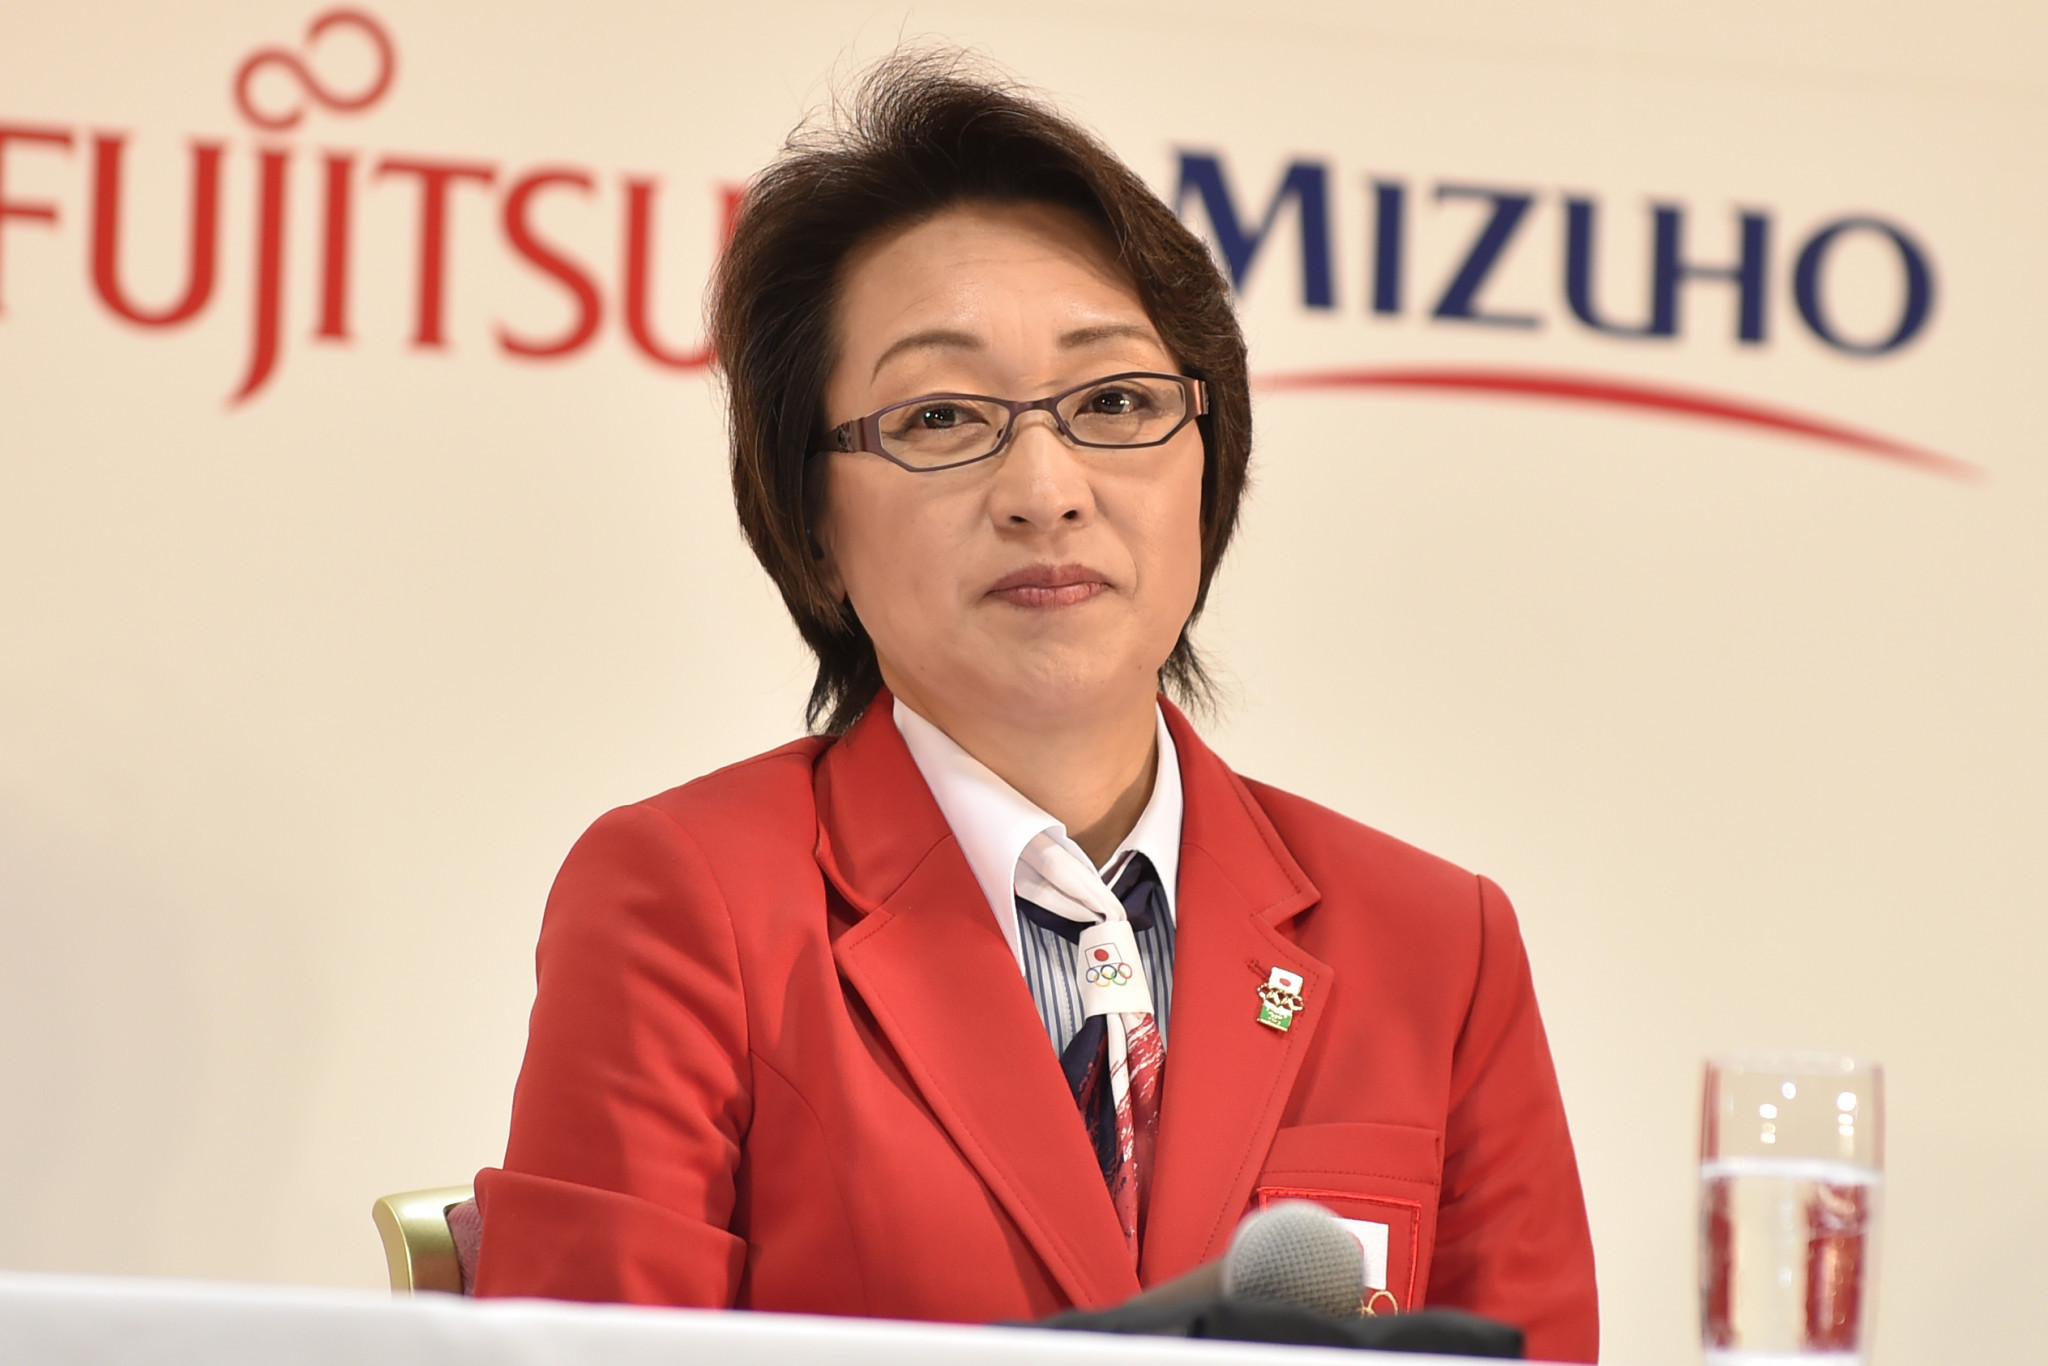 Former speed skater Seiko Hashimoto is poised to be appointed as the new Olympics Minister in Japan ©Getty Images